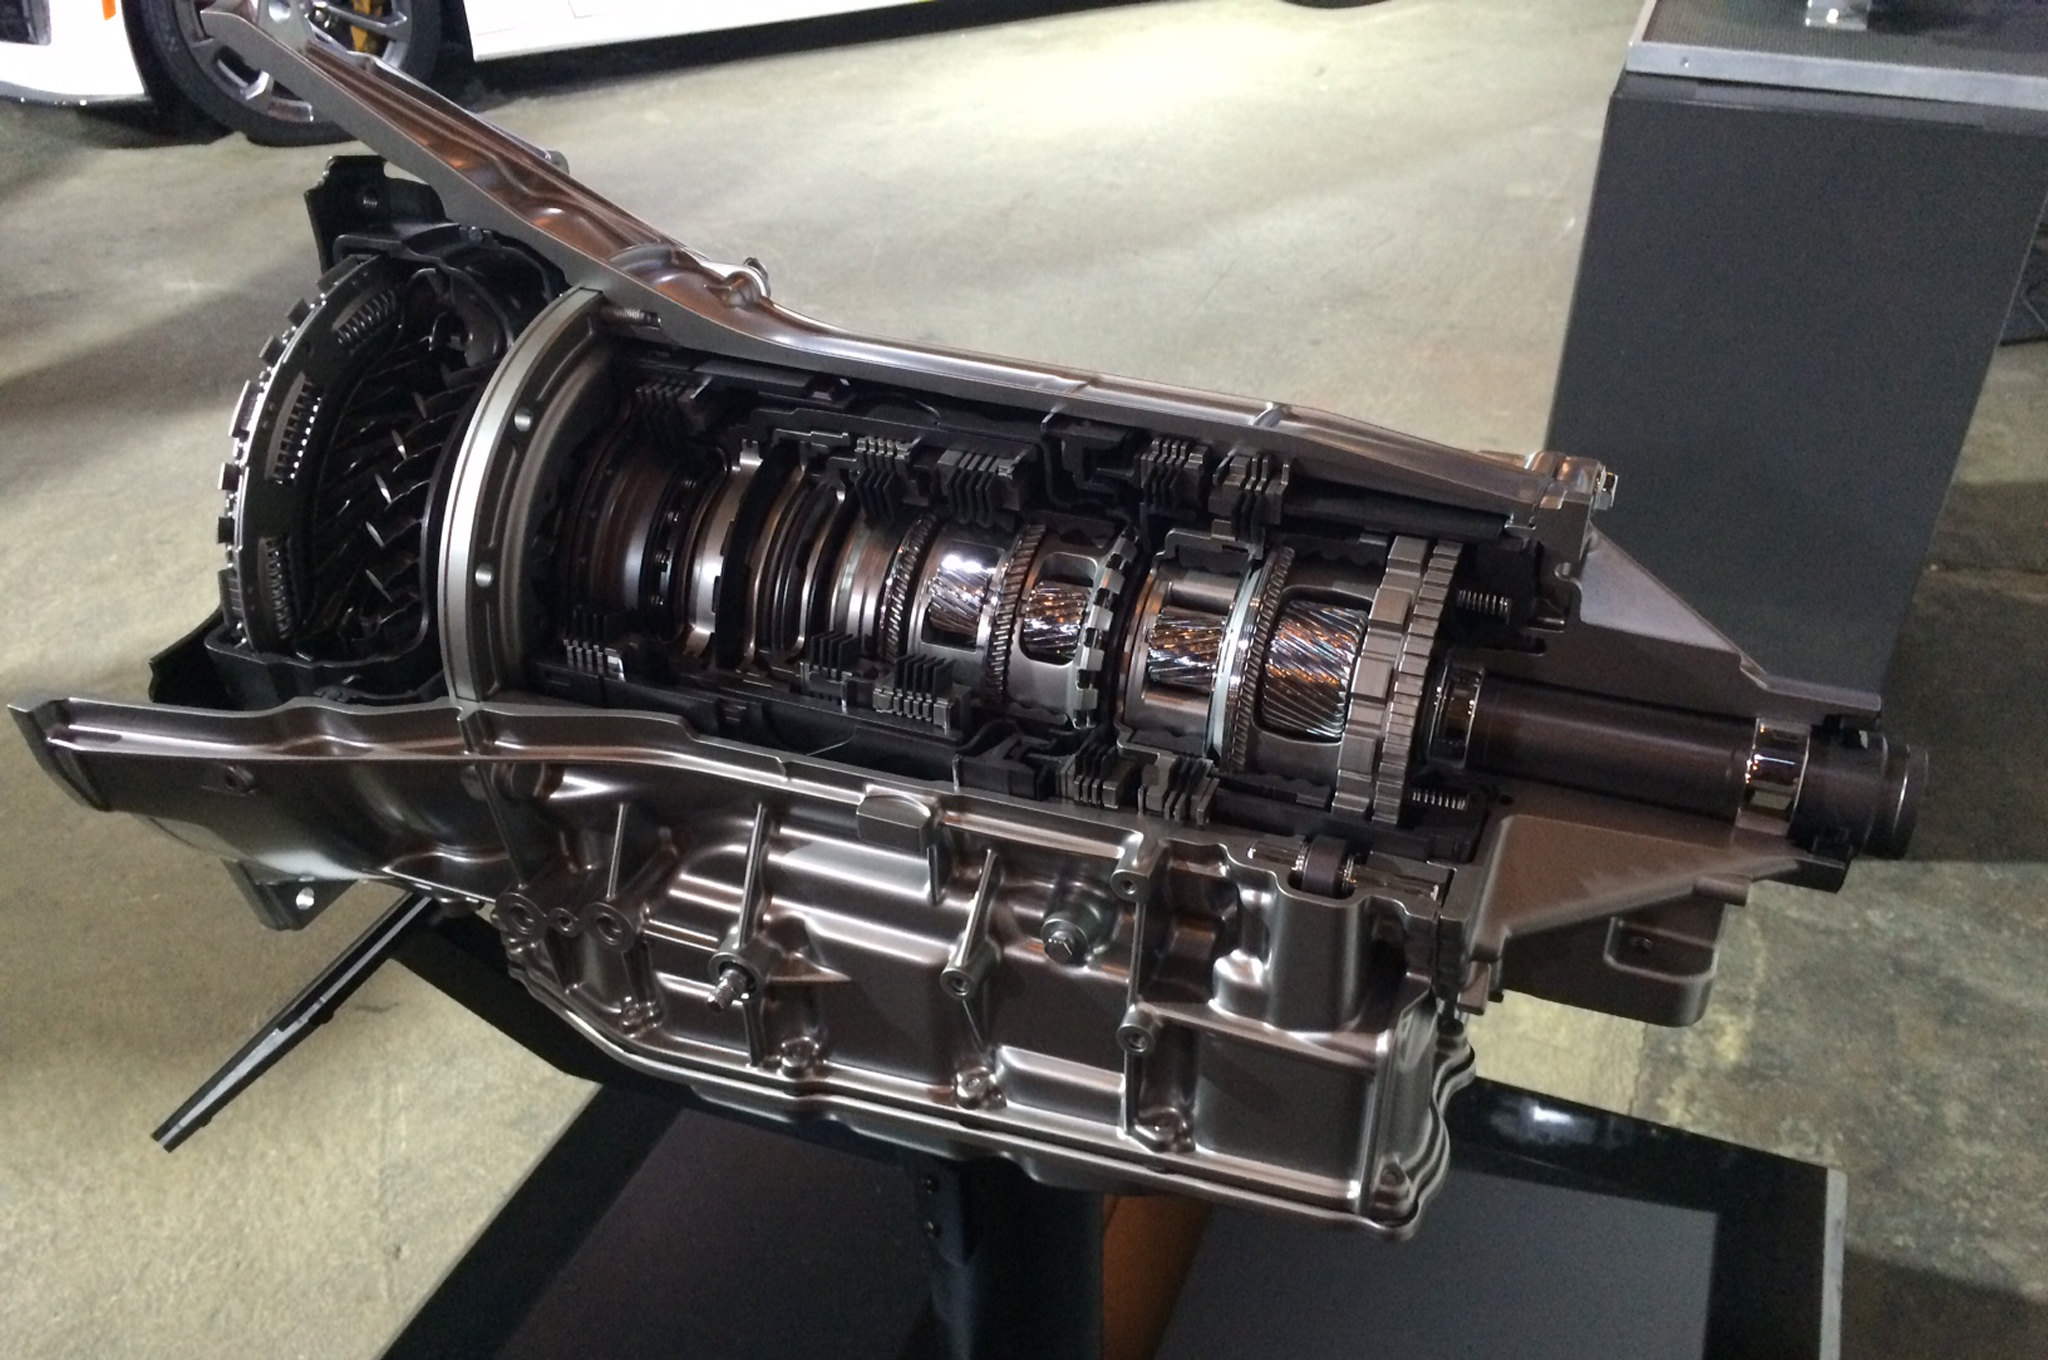 """The transmission case and the tail-shaft are unique for this front-mounted CTS-V application, but everything inside is shared with the latest Corvette transaxle. Expect this """"8L"""" line of transmissions to proliferate with lower-number suffixes as lighter-duty versions gradually replace GM's six-speed trannies. This transmission is 28 pounds lighter than its six-speed predecessor."""